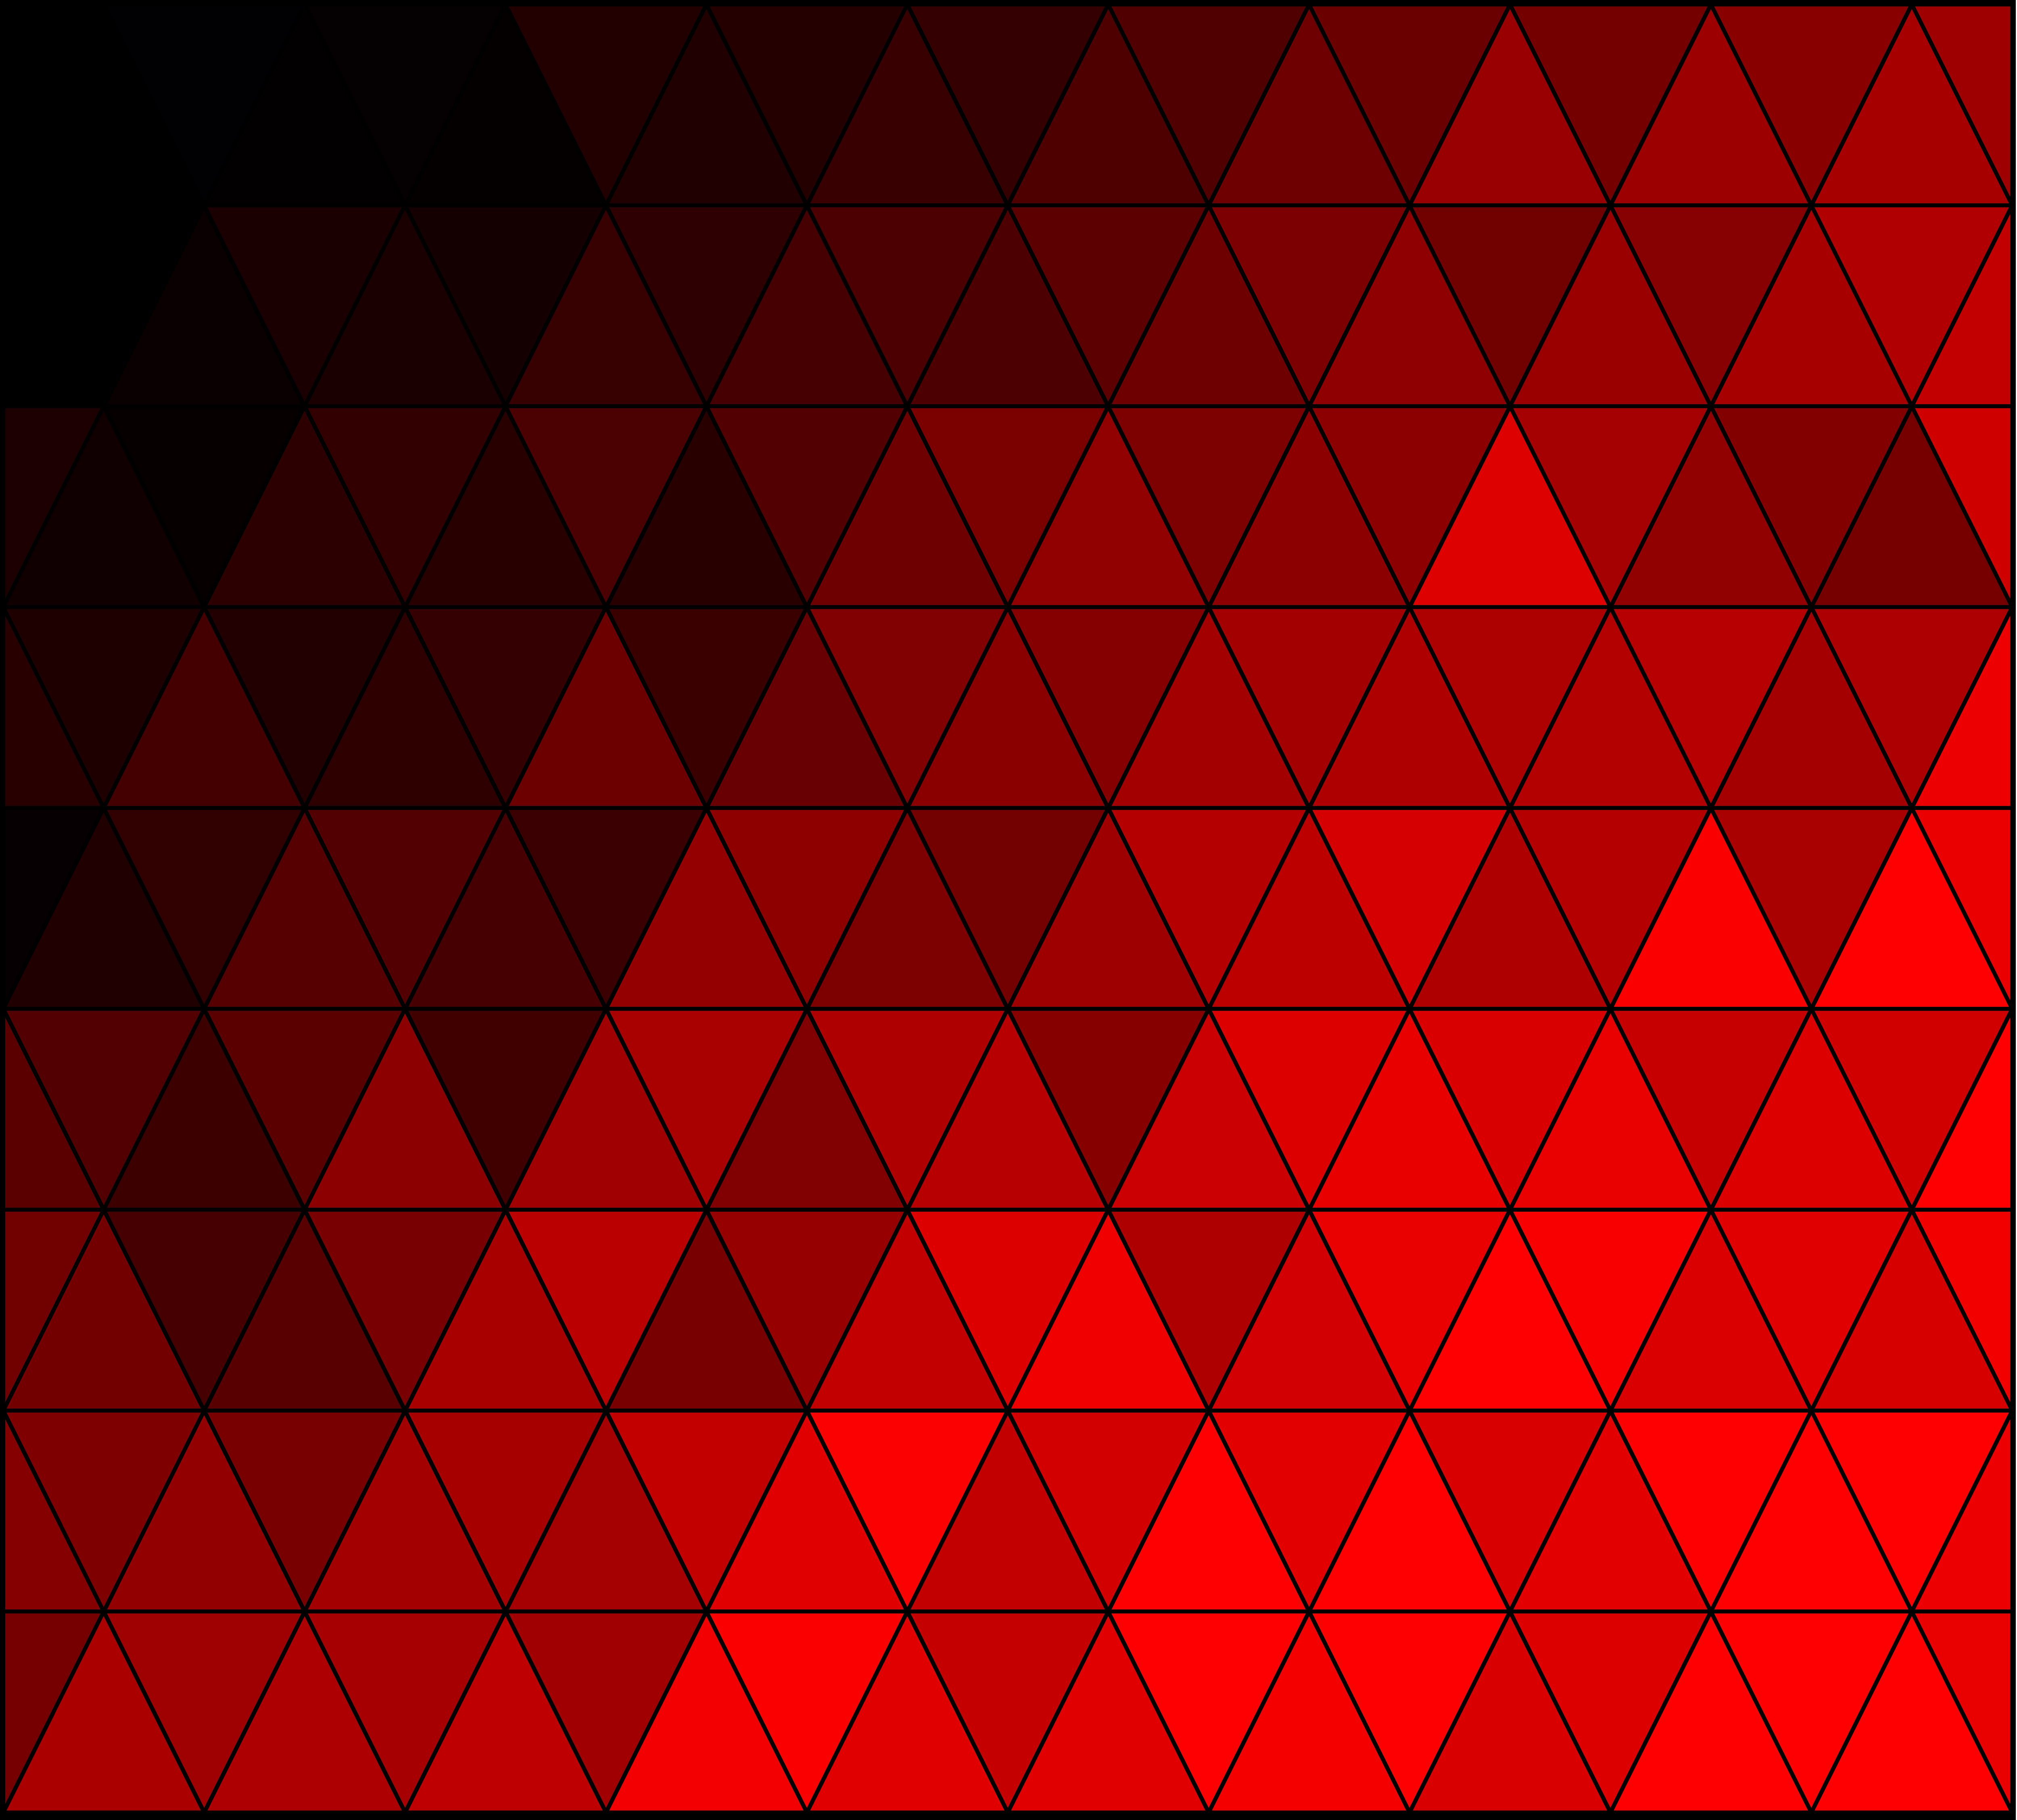 Red Square Grid Mosaic Background Creative Design Templates